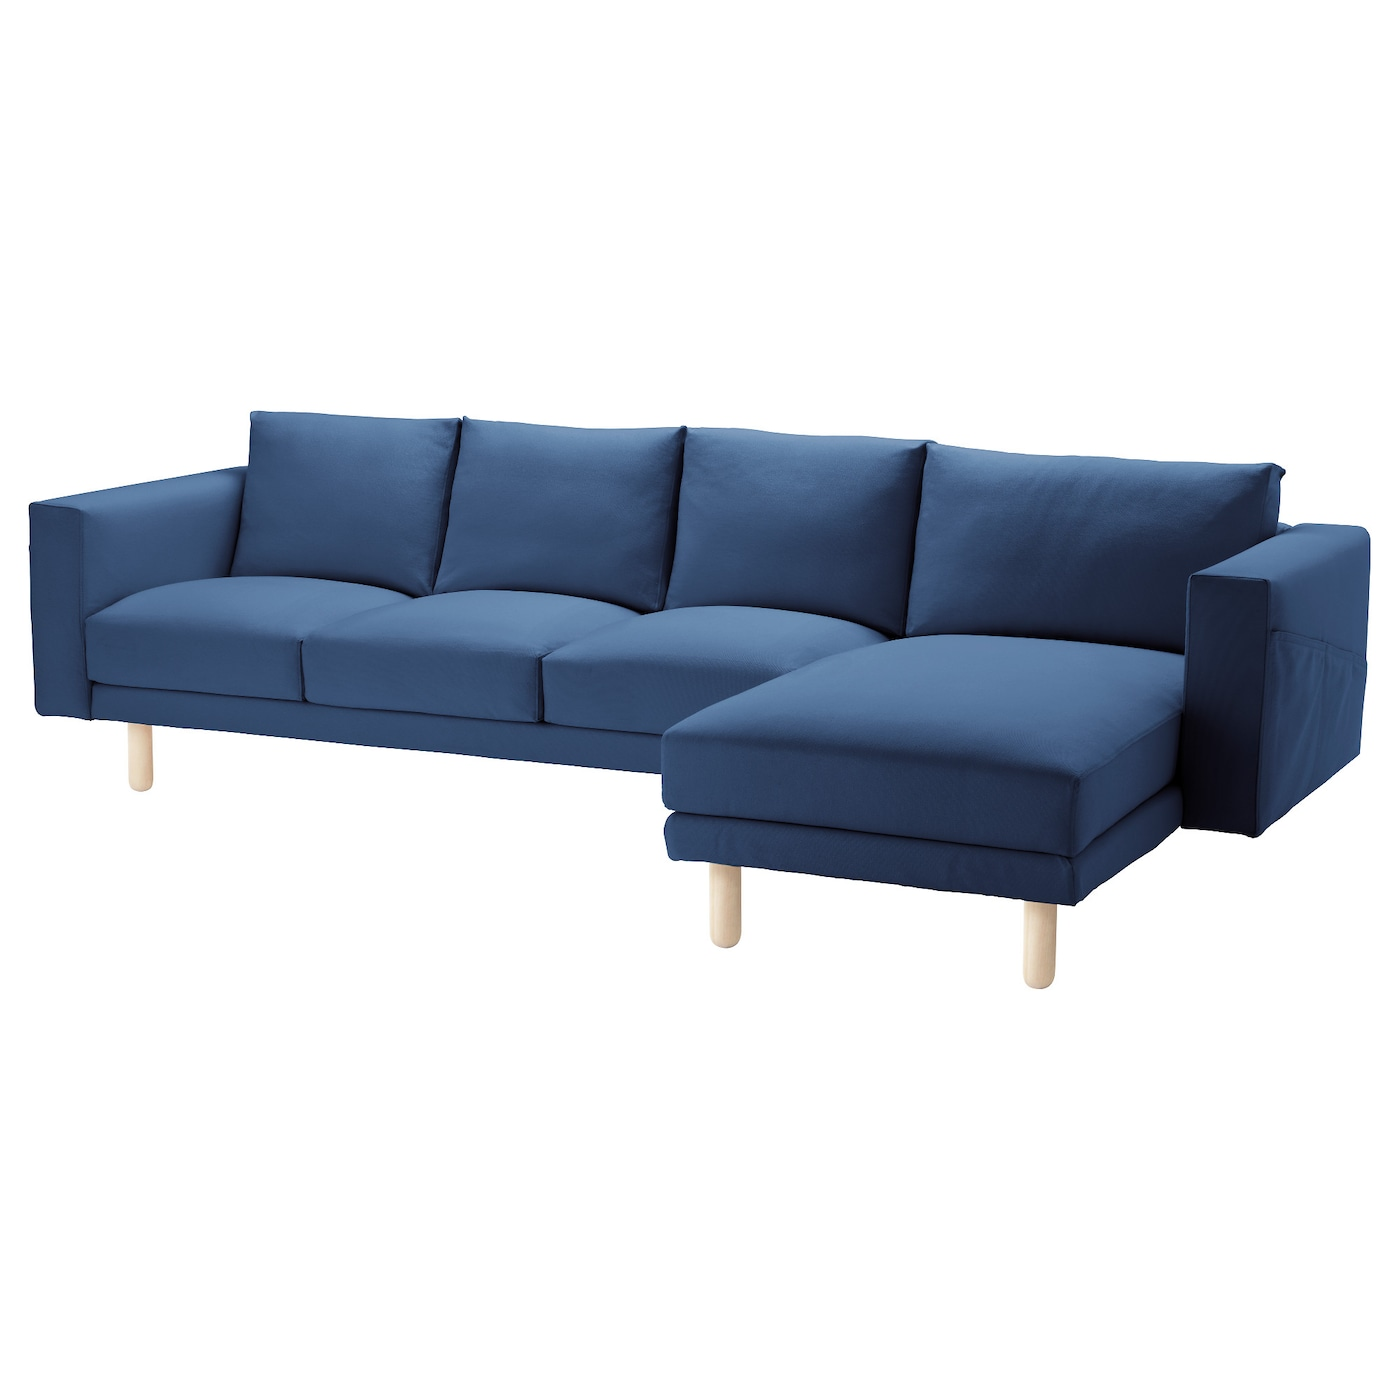 norsborg three seat sofa and chaise longue gr sbo dark